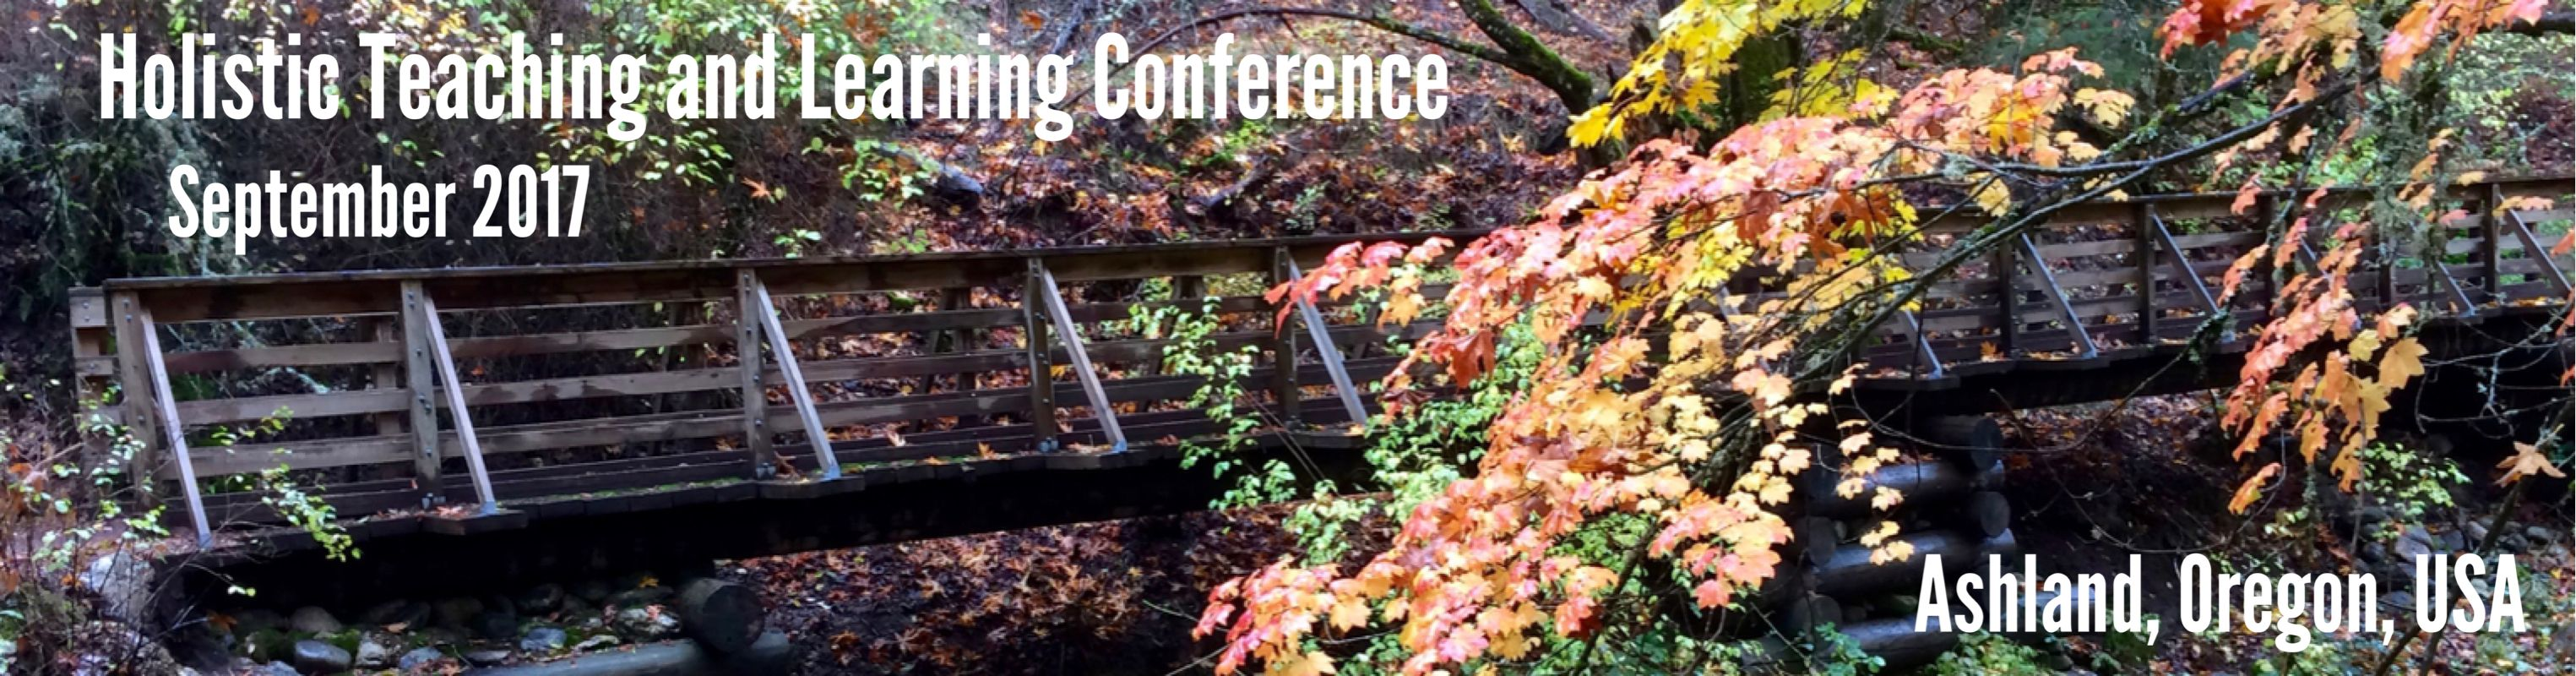 Holistic Teaching and Learning Conference, September 2017, Ashland, Oregon, USA